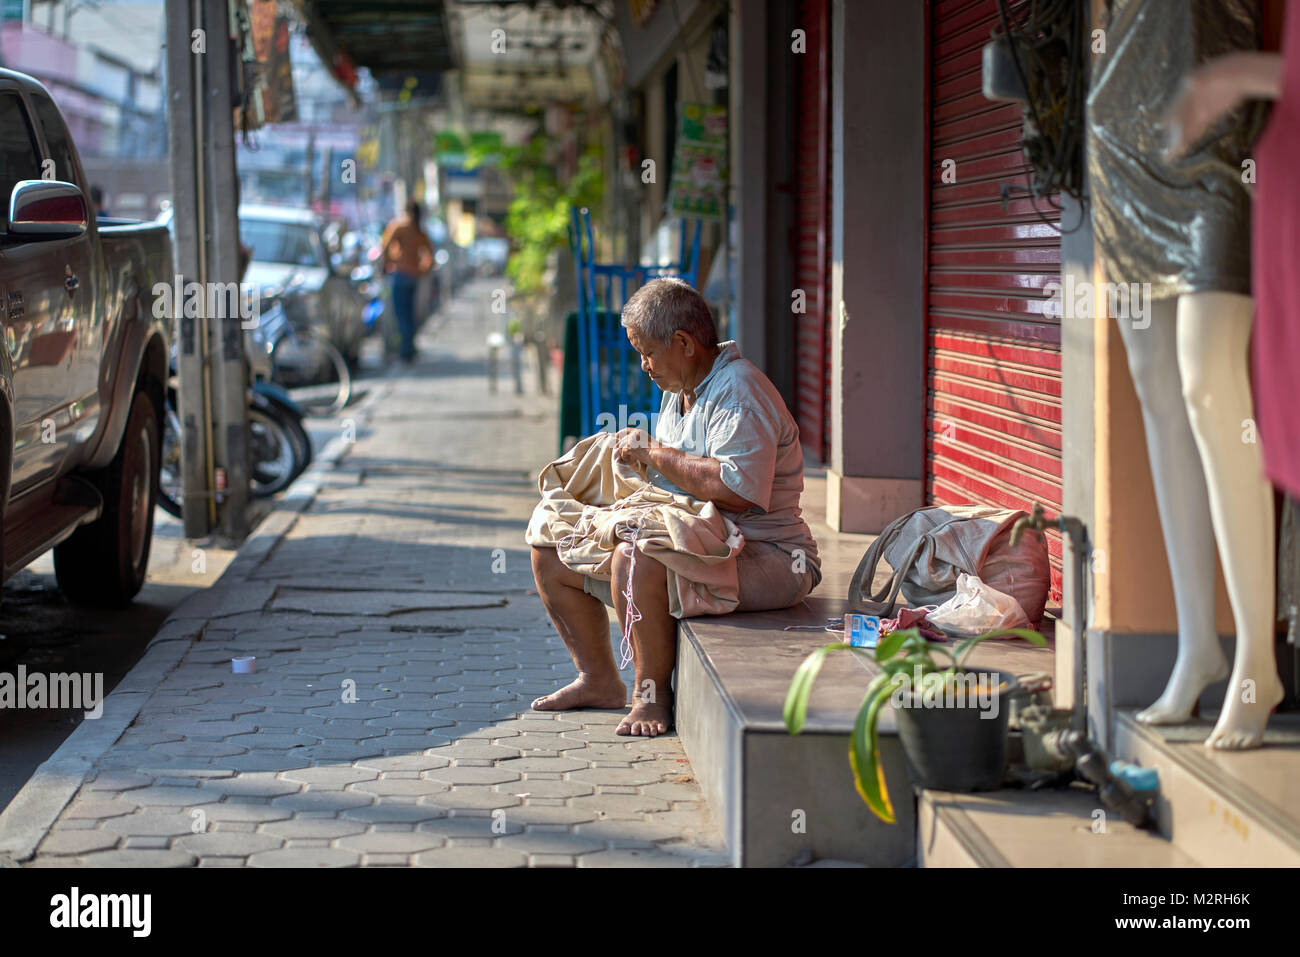 Elderly Thai woman, barefeet in the street, sowing sacks for local shops. Thailand poverty, Southeast Asia - Stock Image